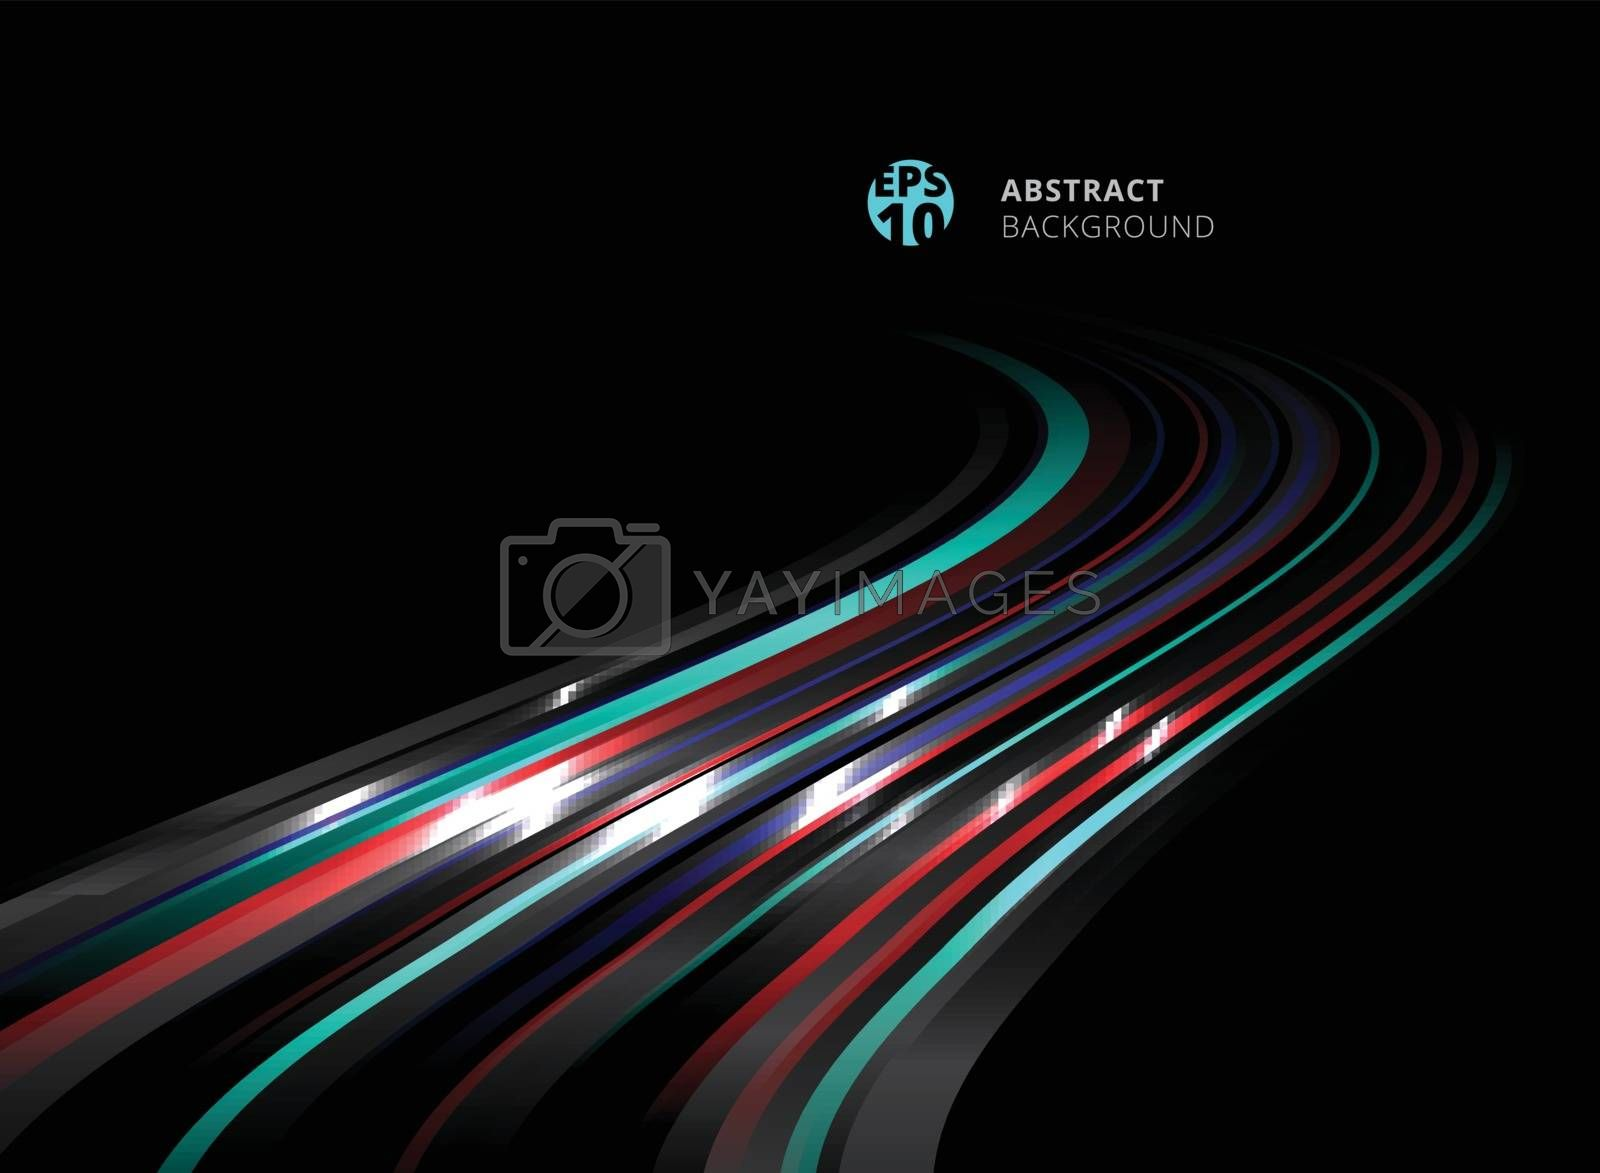 Abstract perspective technology striped blue, red color lines with lighting effect on black background. Vector illustration